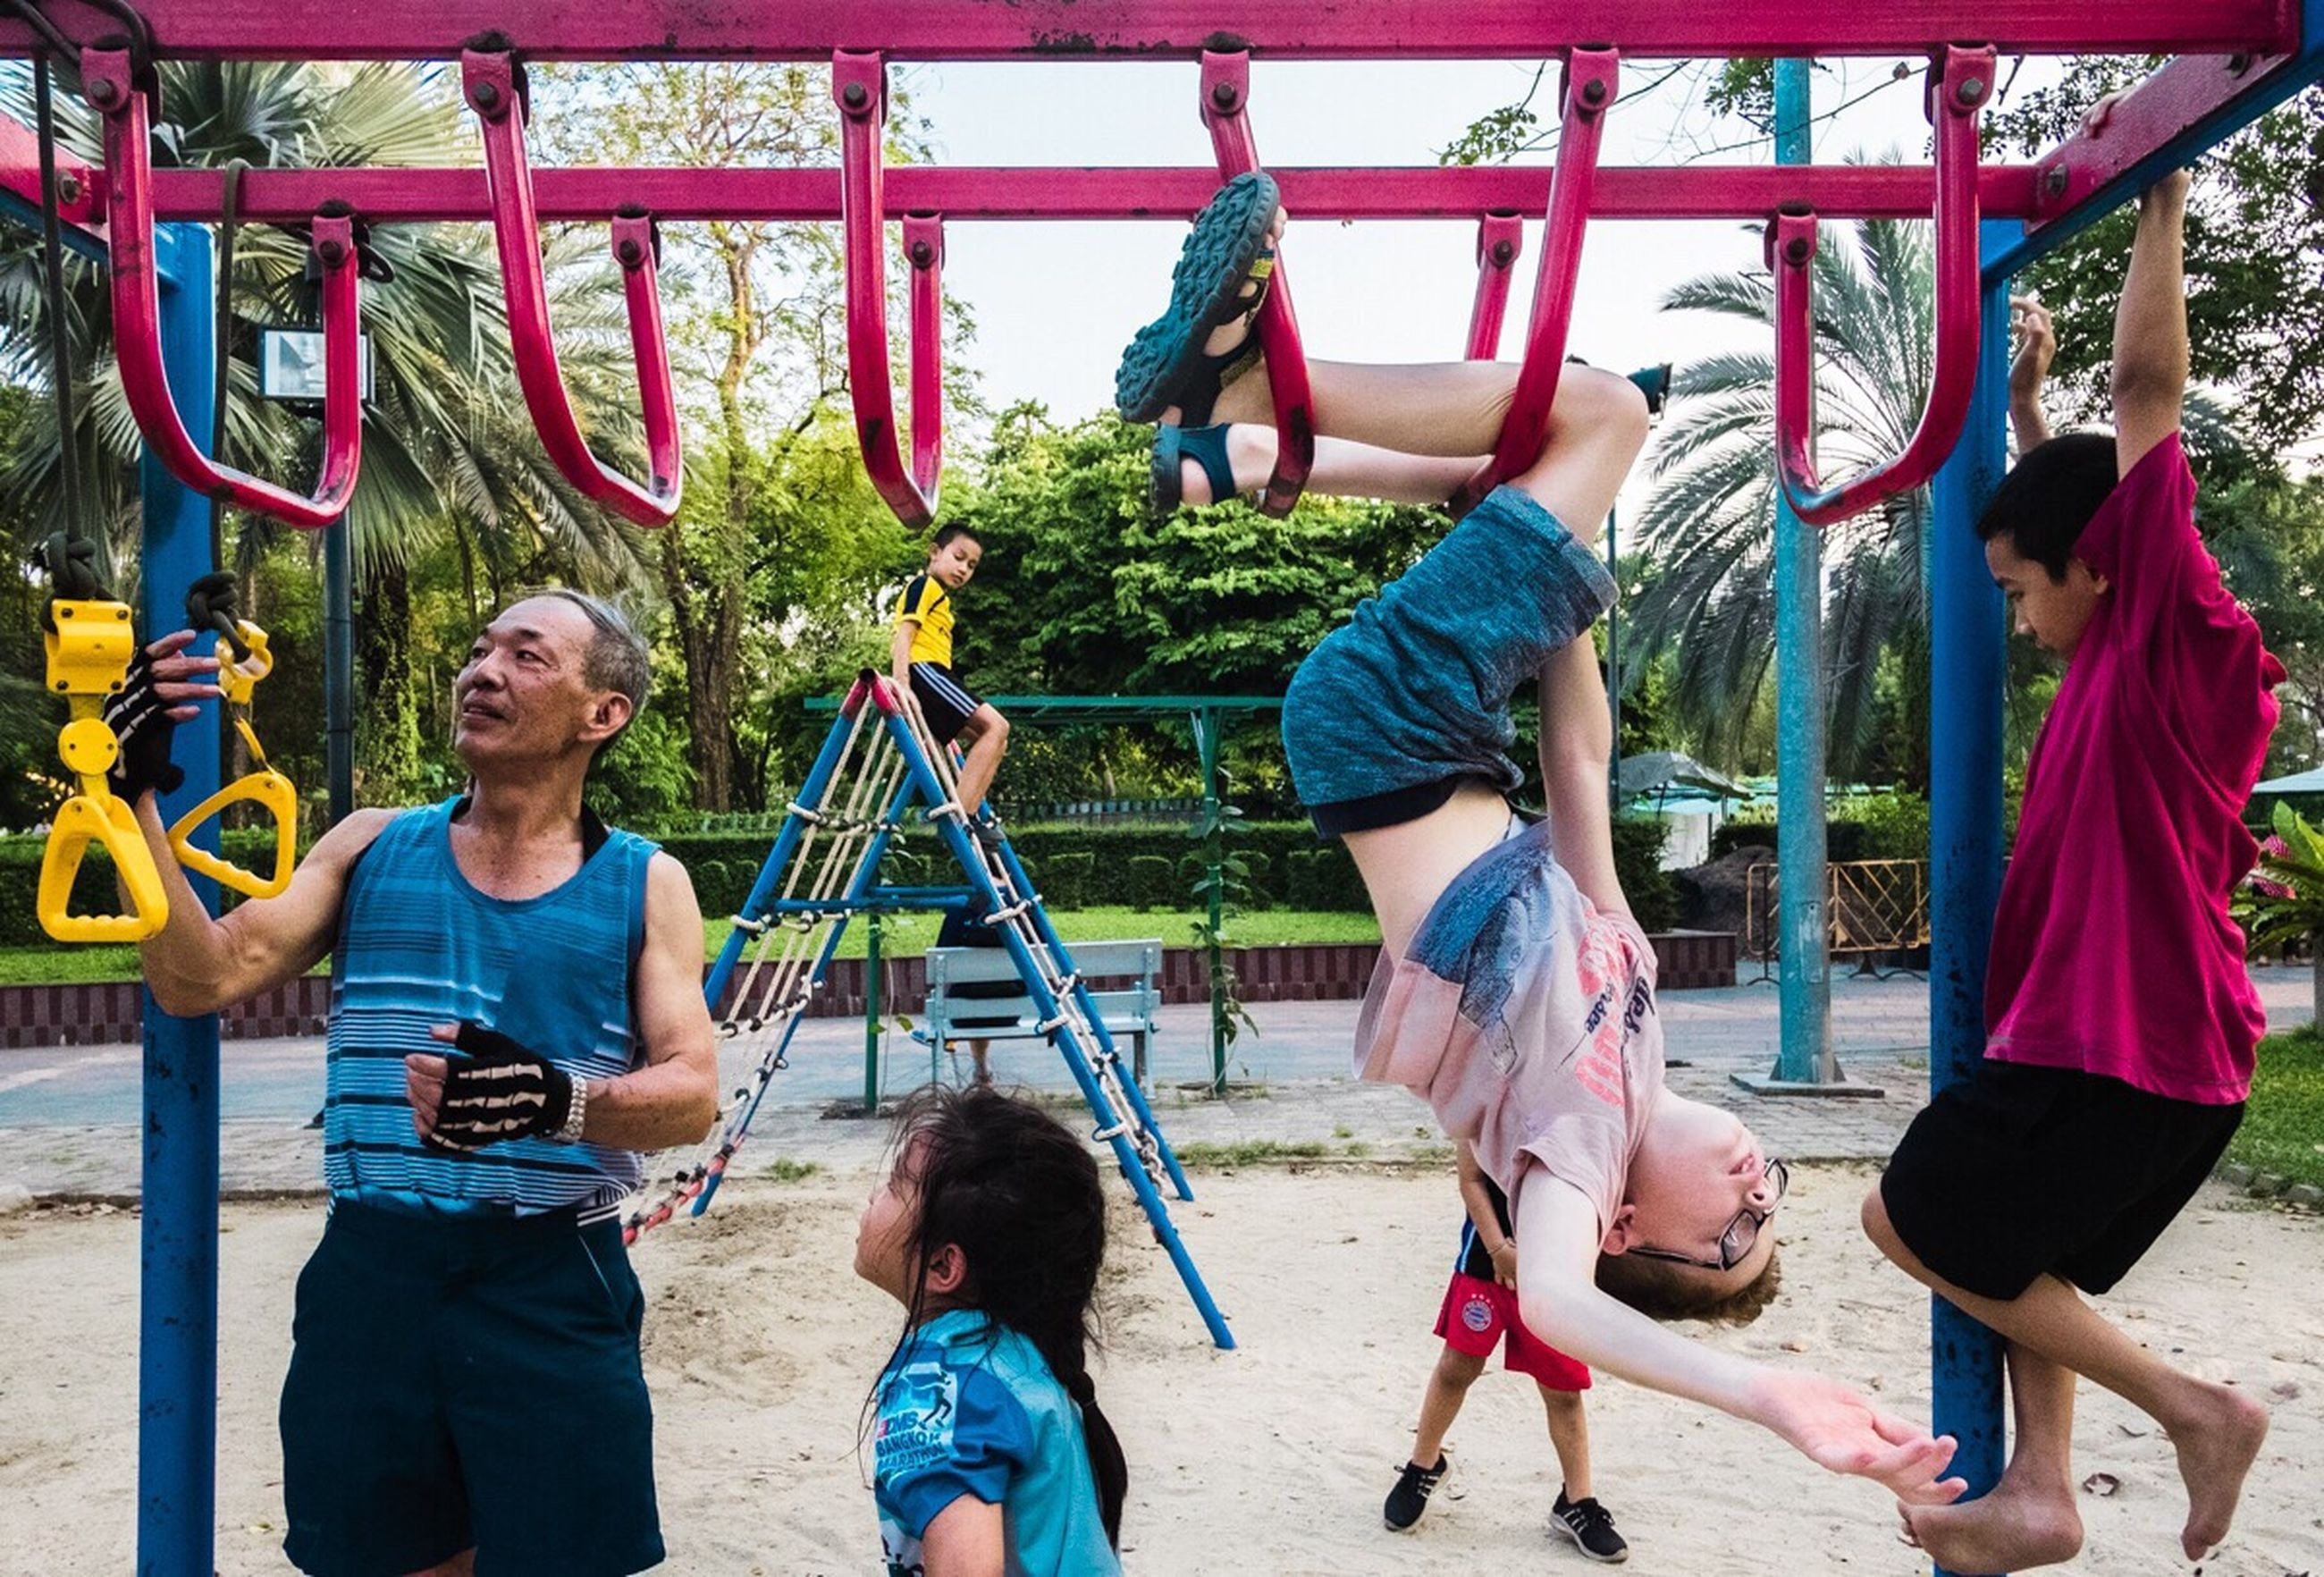 group of people, child, men, real people, lifestyles, girls, childhood, males, women, day, hanging, females, boys, leisure activity, playground, people, casual clothing, playing, three quarter length, innocence, jungle gym